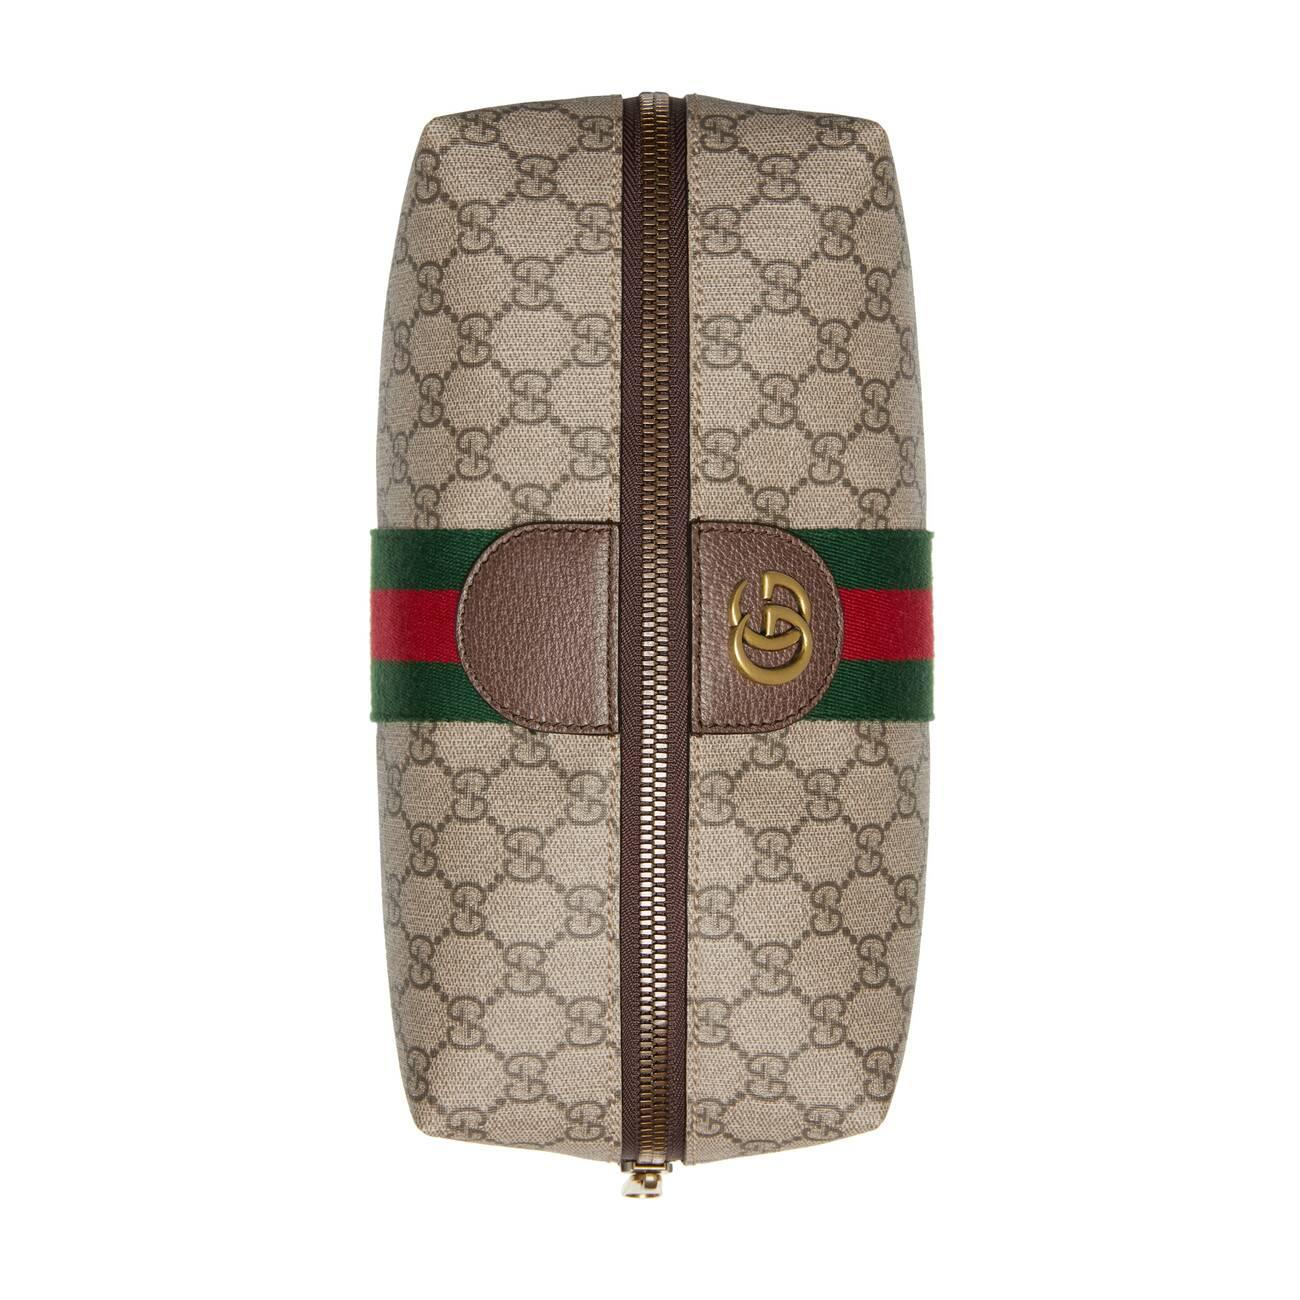 Gucci Canvas Ophidia Gg Toiletry Case In Brown For Men Lyst